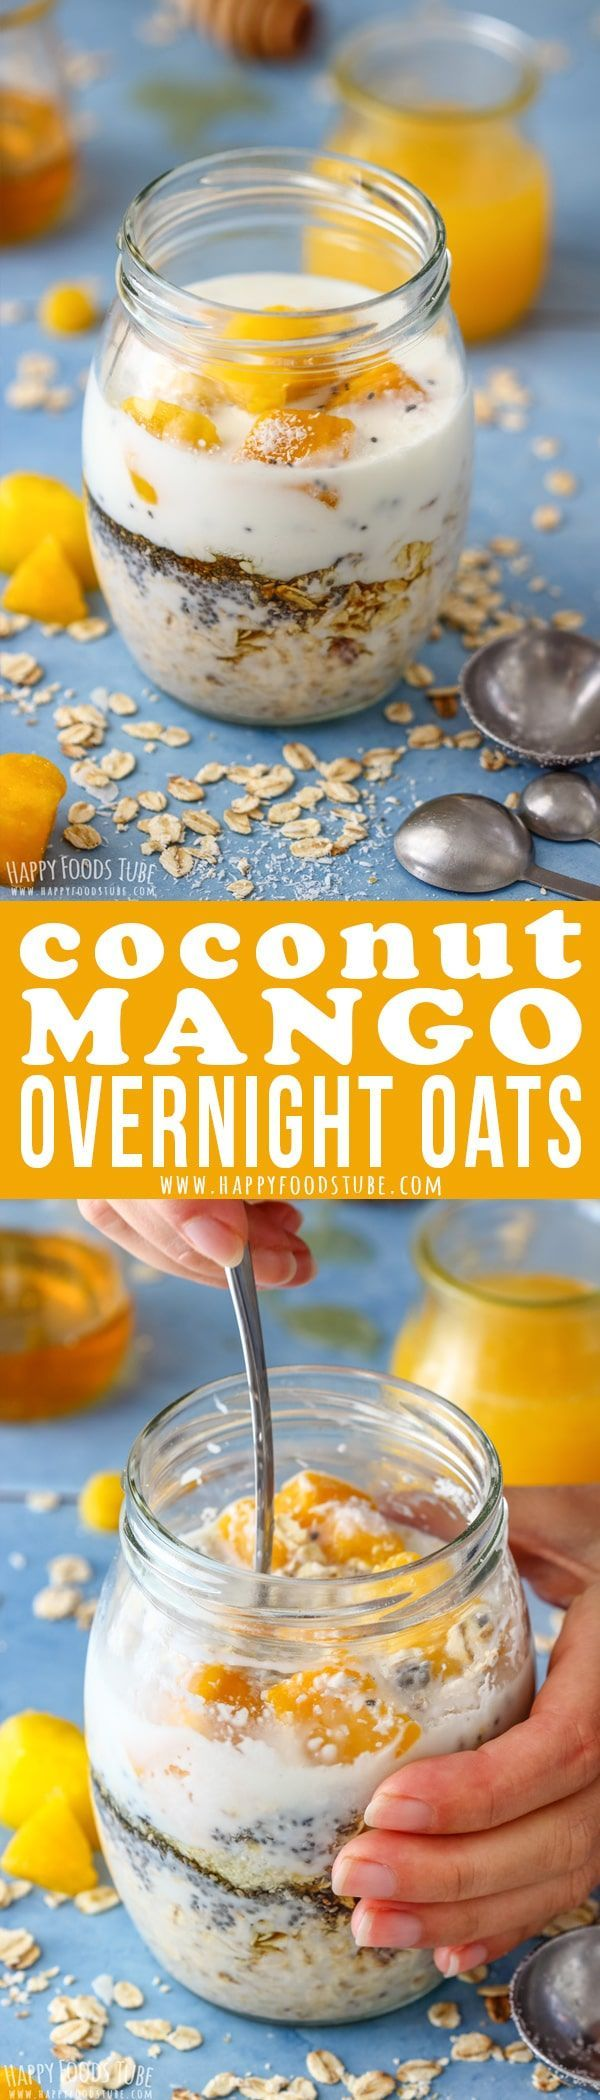 Coconut Mango Overnight oats is the perfect breakfast for people on the go, busy families or anyone who loves fuss-free breakfast. Fill a jar, place it in the fridge and enjoy the following morning. #coconut #mango #overnightoats #healthy #breakfast #oats #recipe #vegetarian #slimmingworld #jar via @happyfoodstube